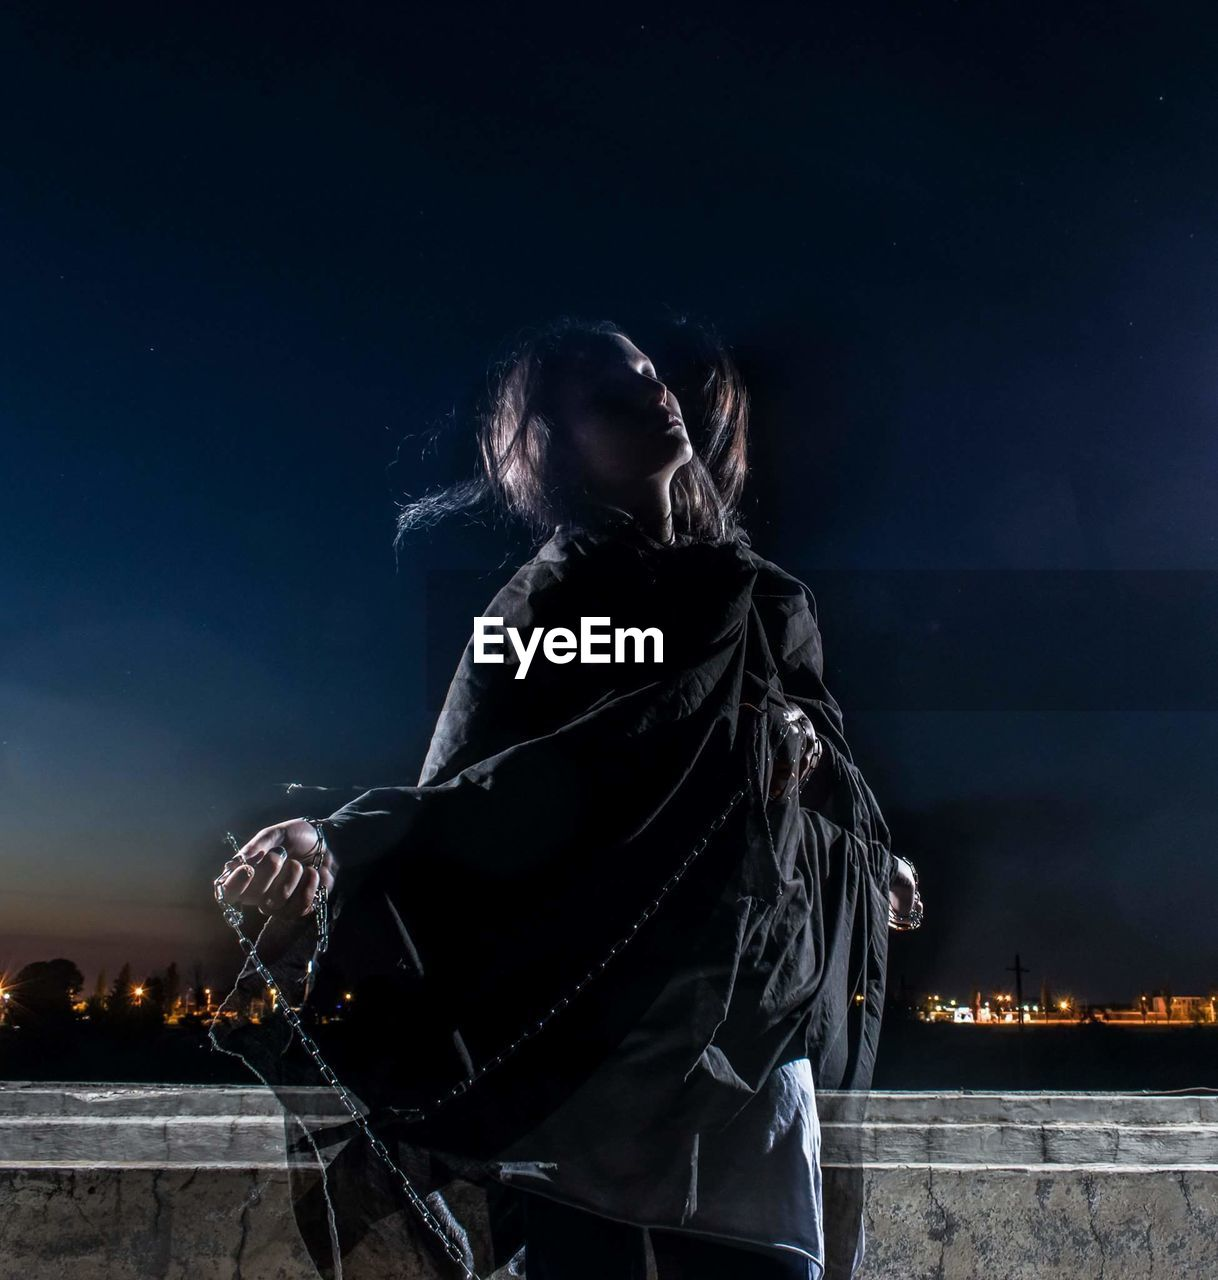 Double exposure image of woman holding chain against sky at night